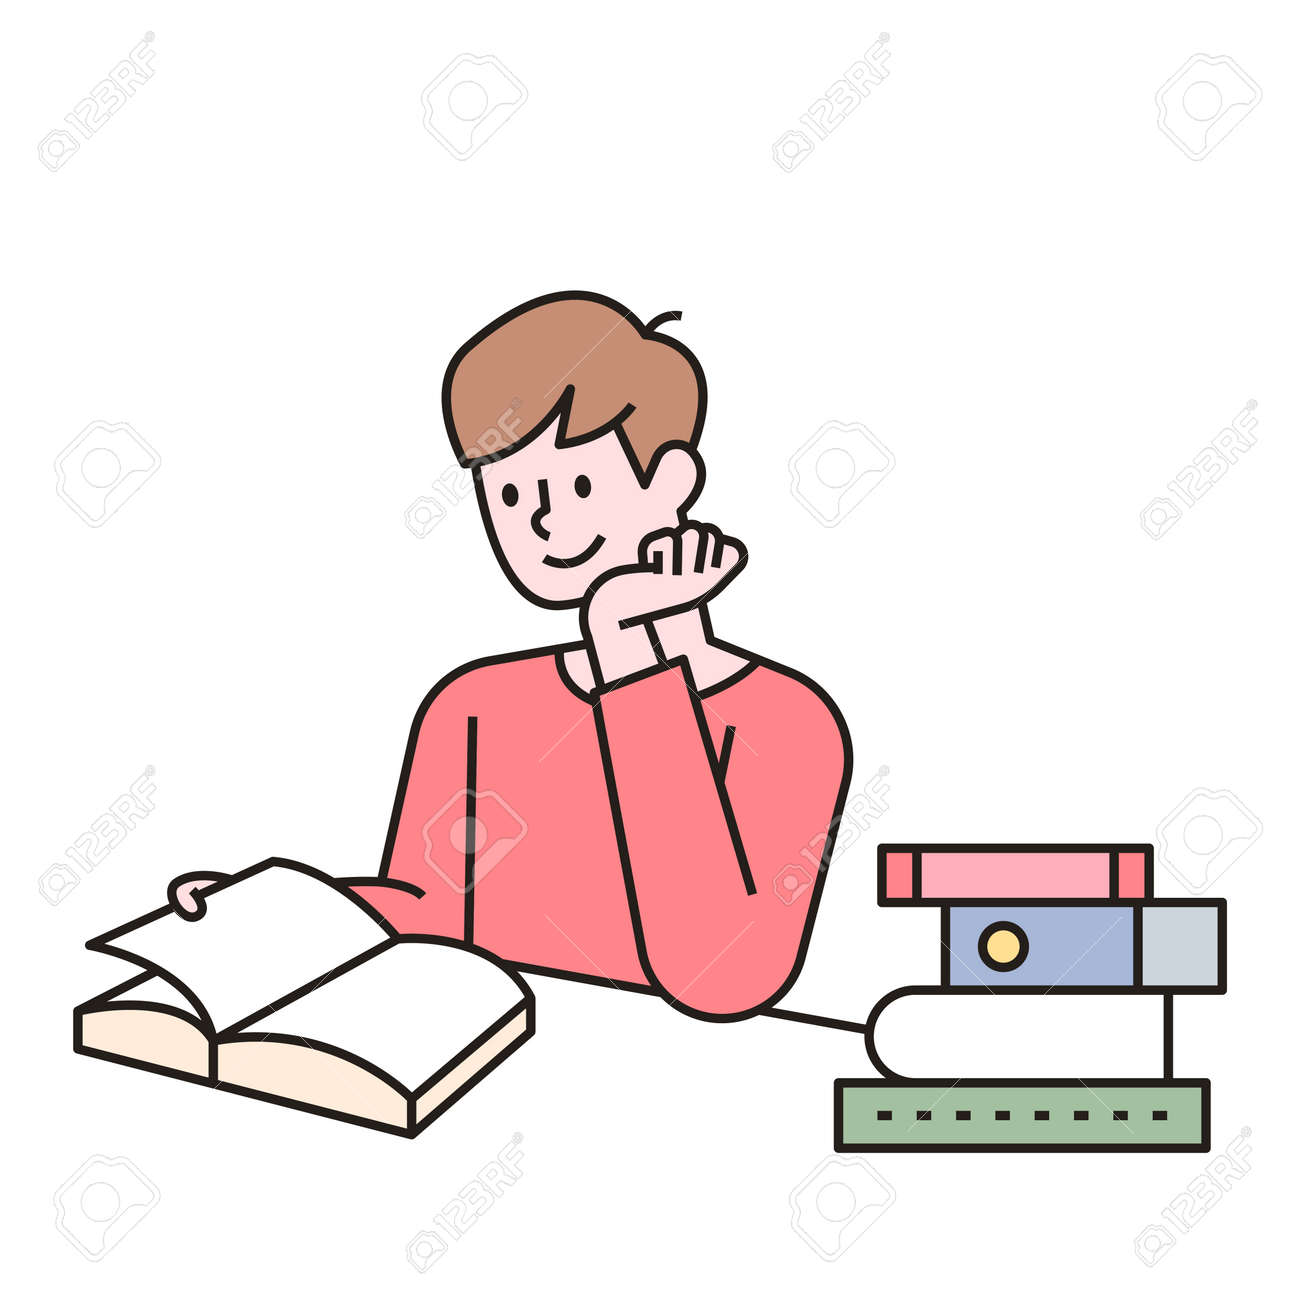 A man is reading a book at his desk, with books stacked next to him. outline simple vector illustration. - 172561213